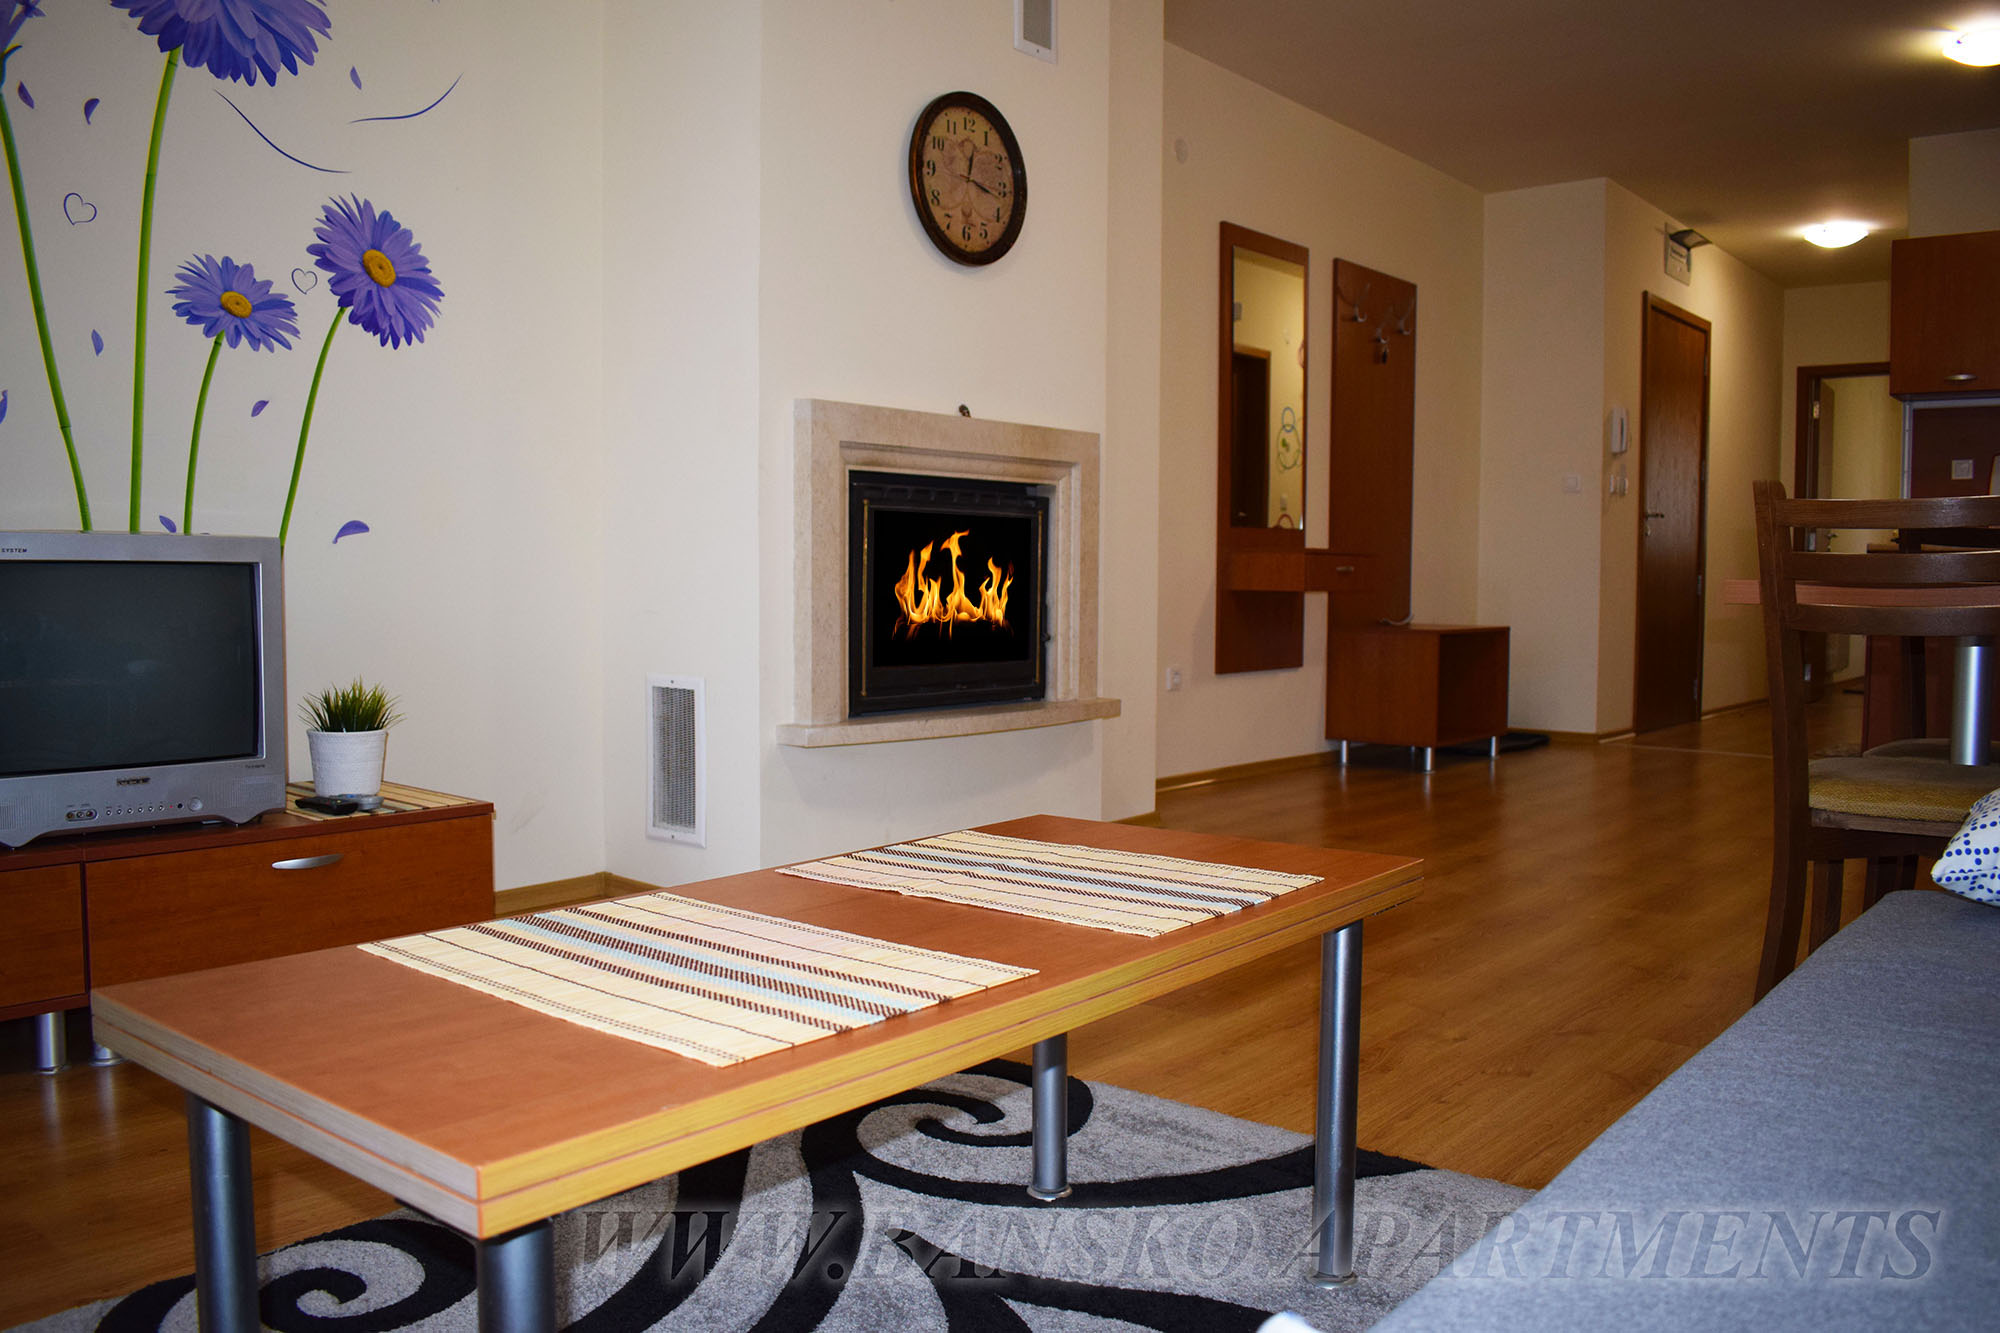 Apartment for Rent with a fireplace